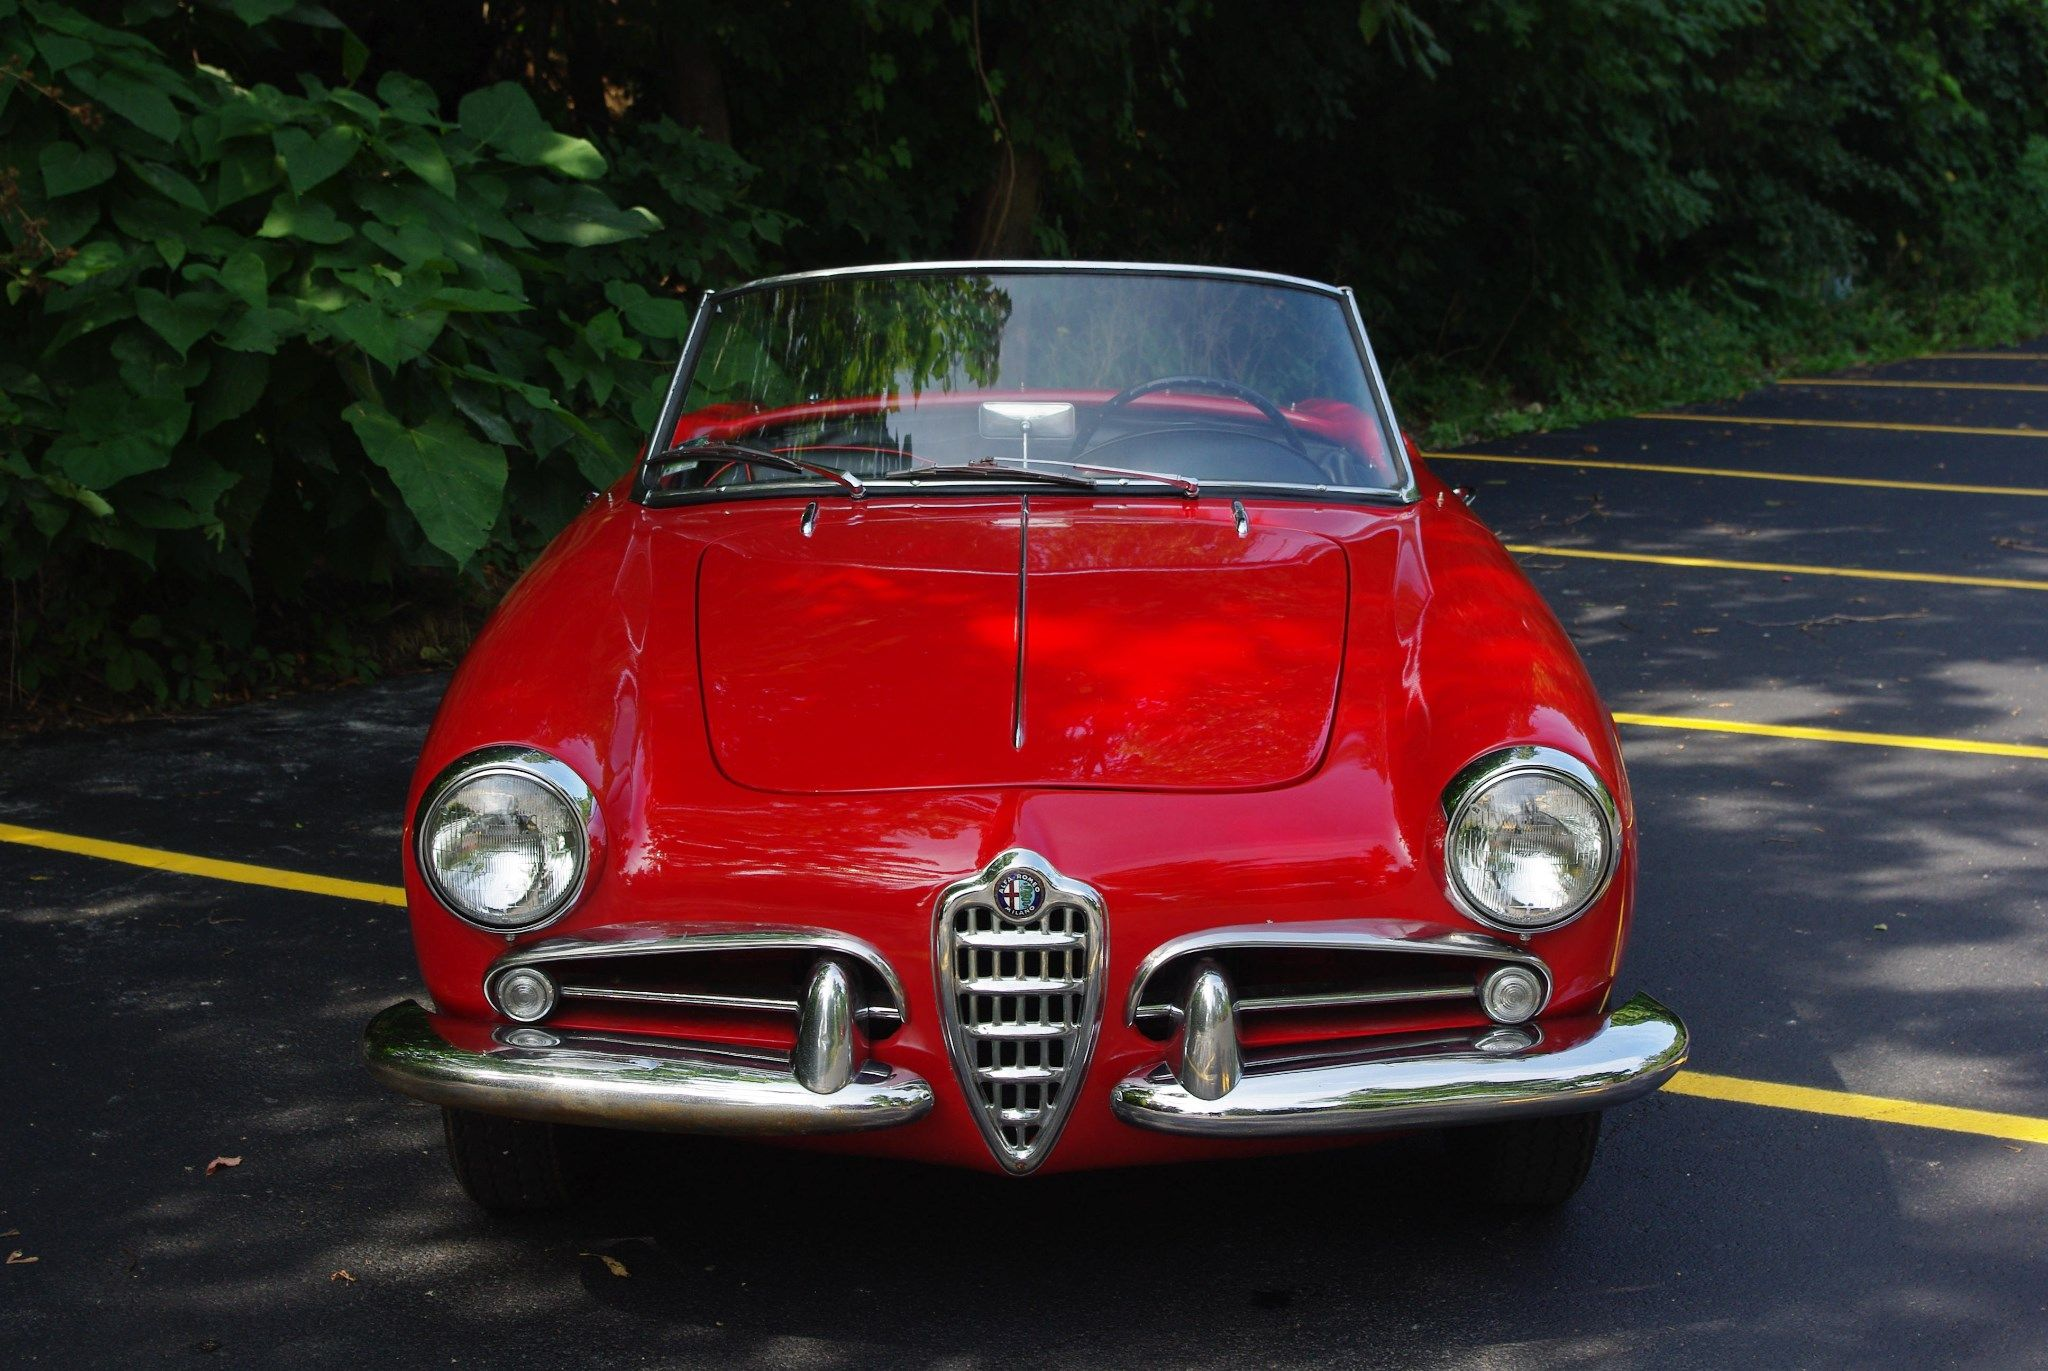 This 1957 Alfa Romeo Giulietta Spider 750d Was Acquired From The Son Rear End Of Original Owner A Couple Years Ago Has Been Kept Very